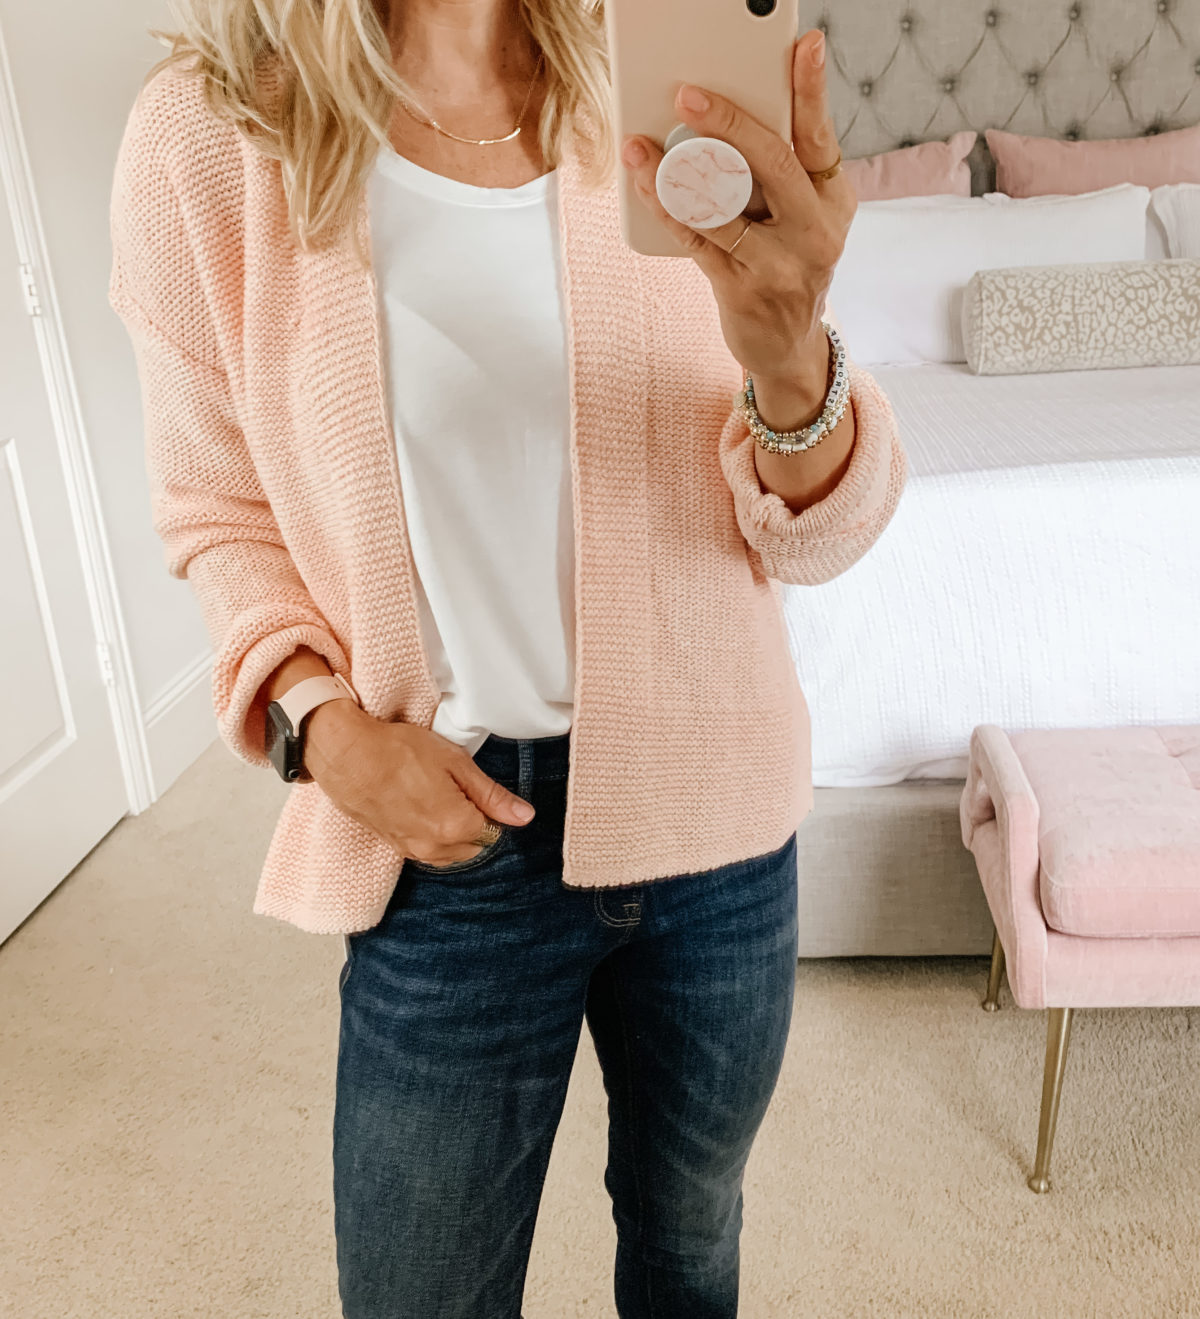 Old Navy Fashion, White Tank, Cardigan, Jeans, Booties